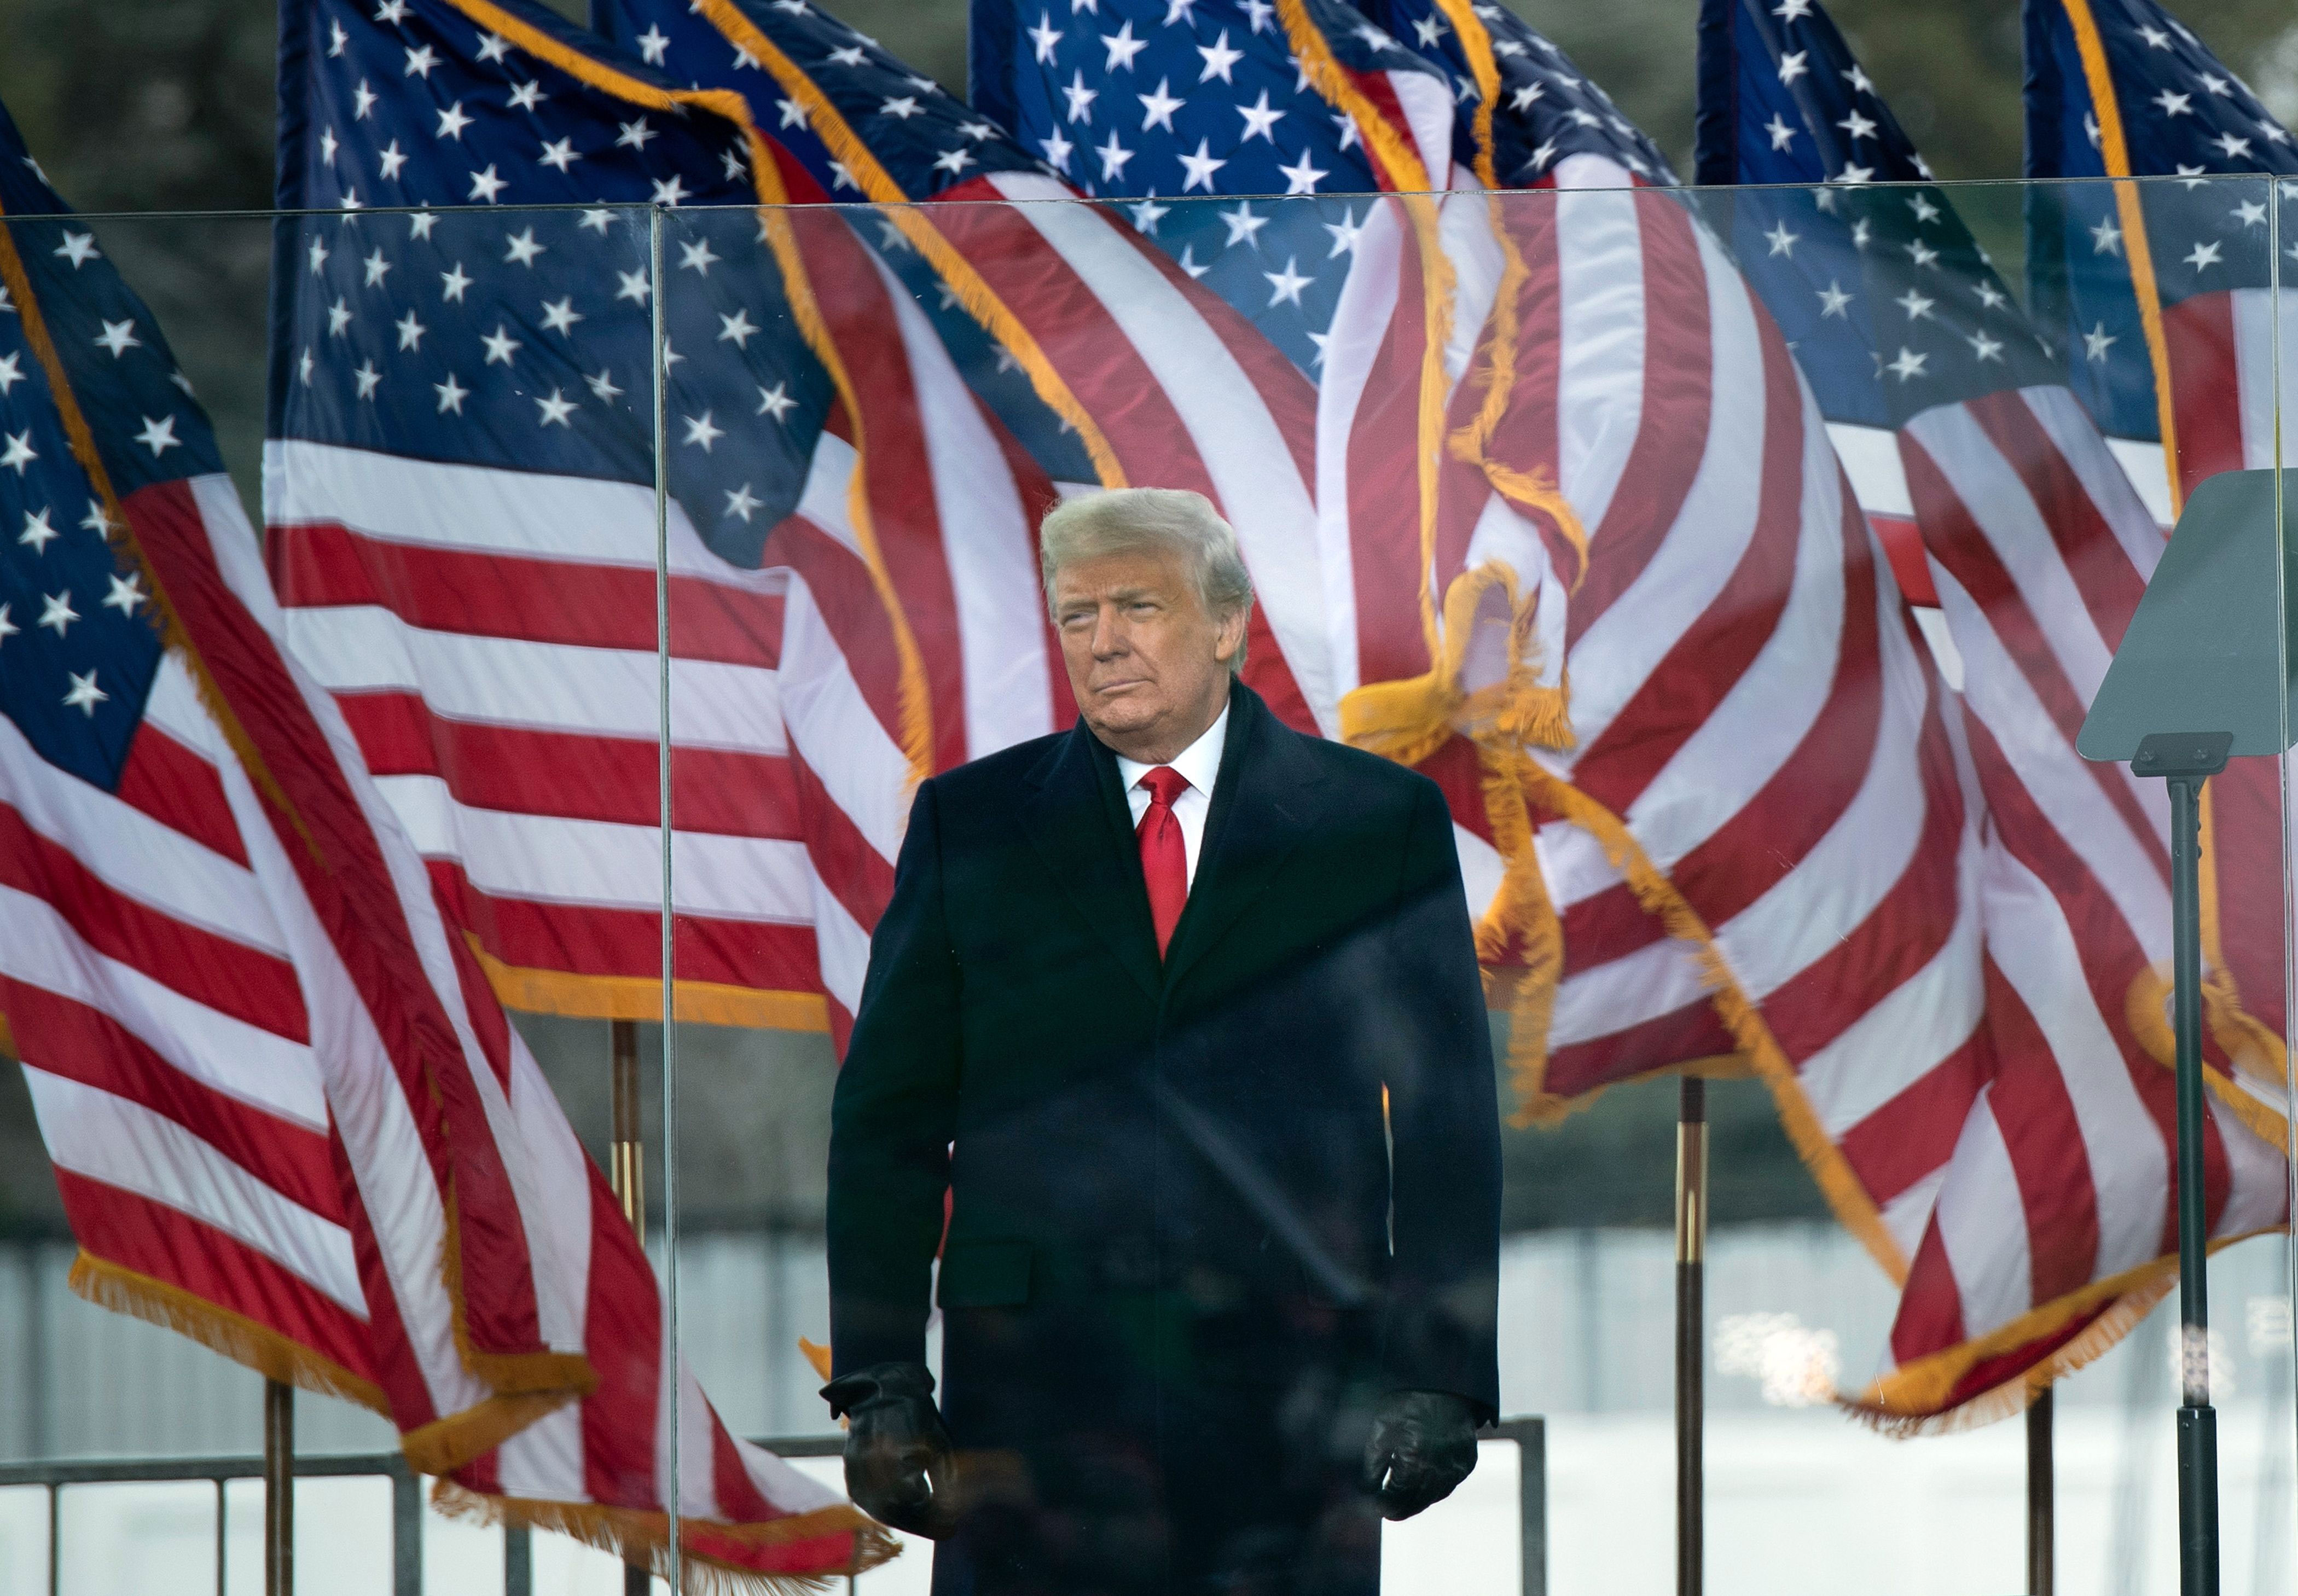 President Donald Trump arrives at a rally near the White House on January 6.